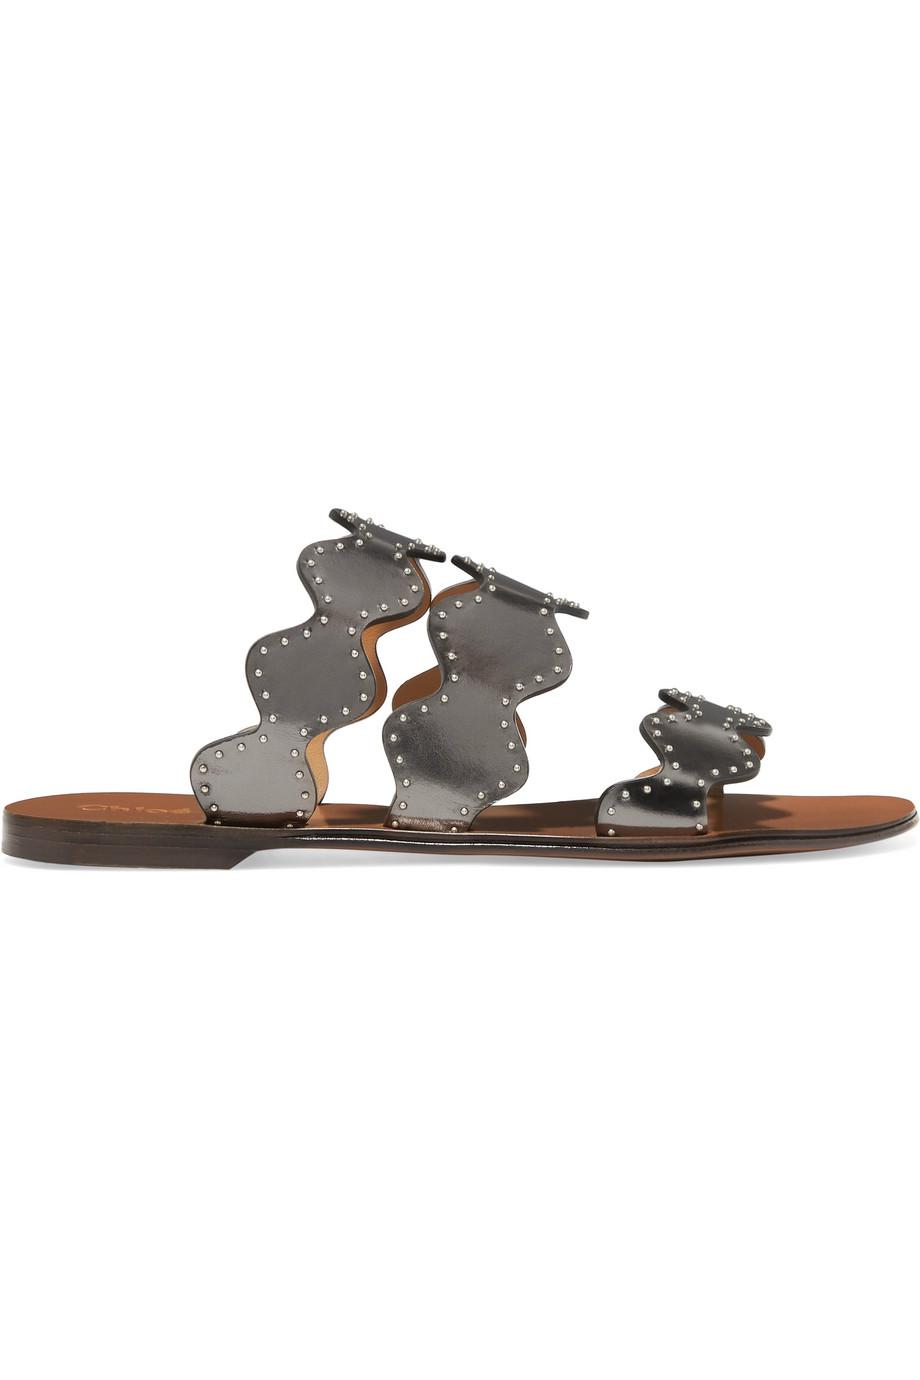 Clearance Official Site Sale Online Store Chloé Lauren Scalloped Embellished Metallic Leather Slides - Gunmetal Online Cheap Price FY7qGNr